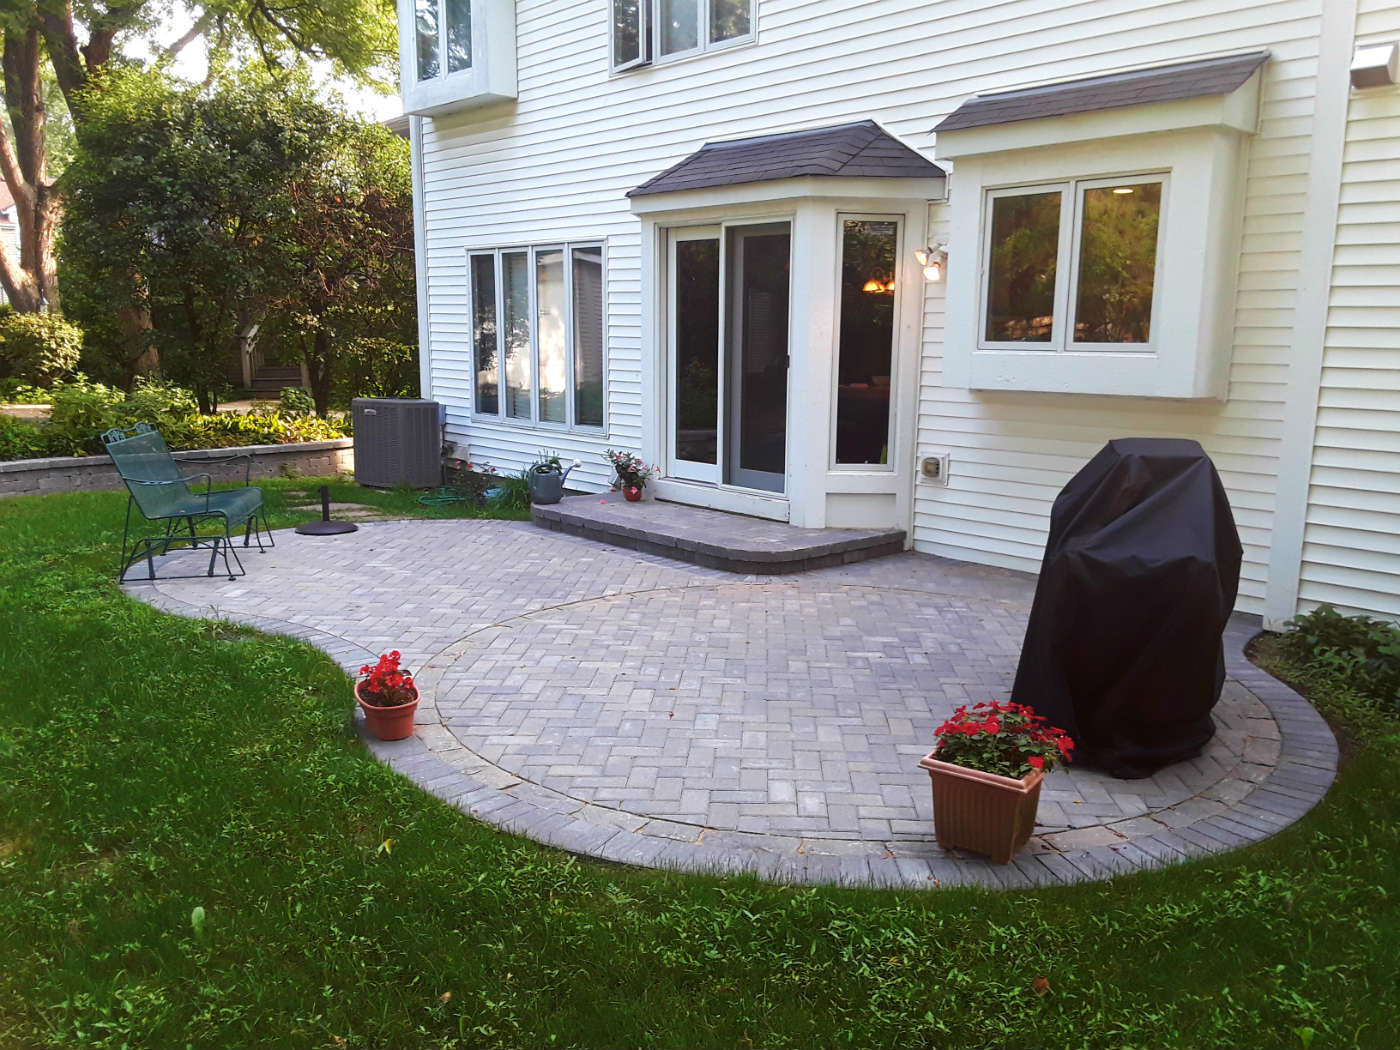 Belgard Paver Patio Design by Clarendon Hills, IL deck designer Thumbnail